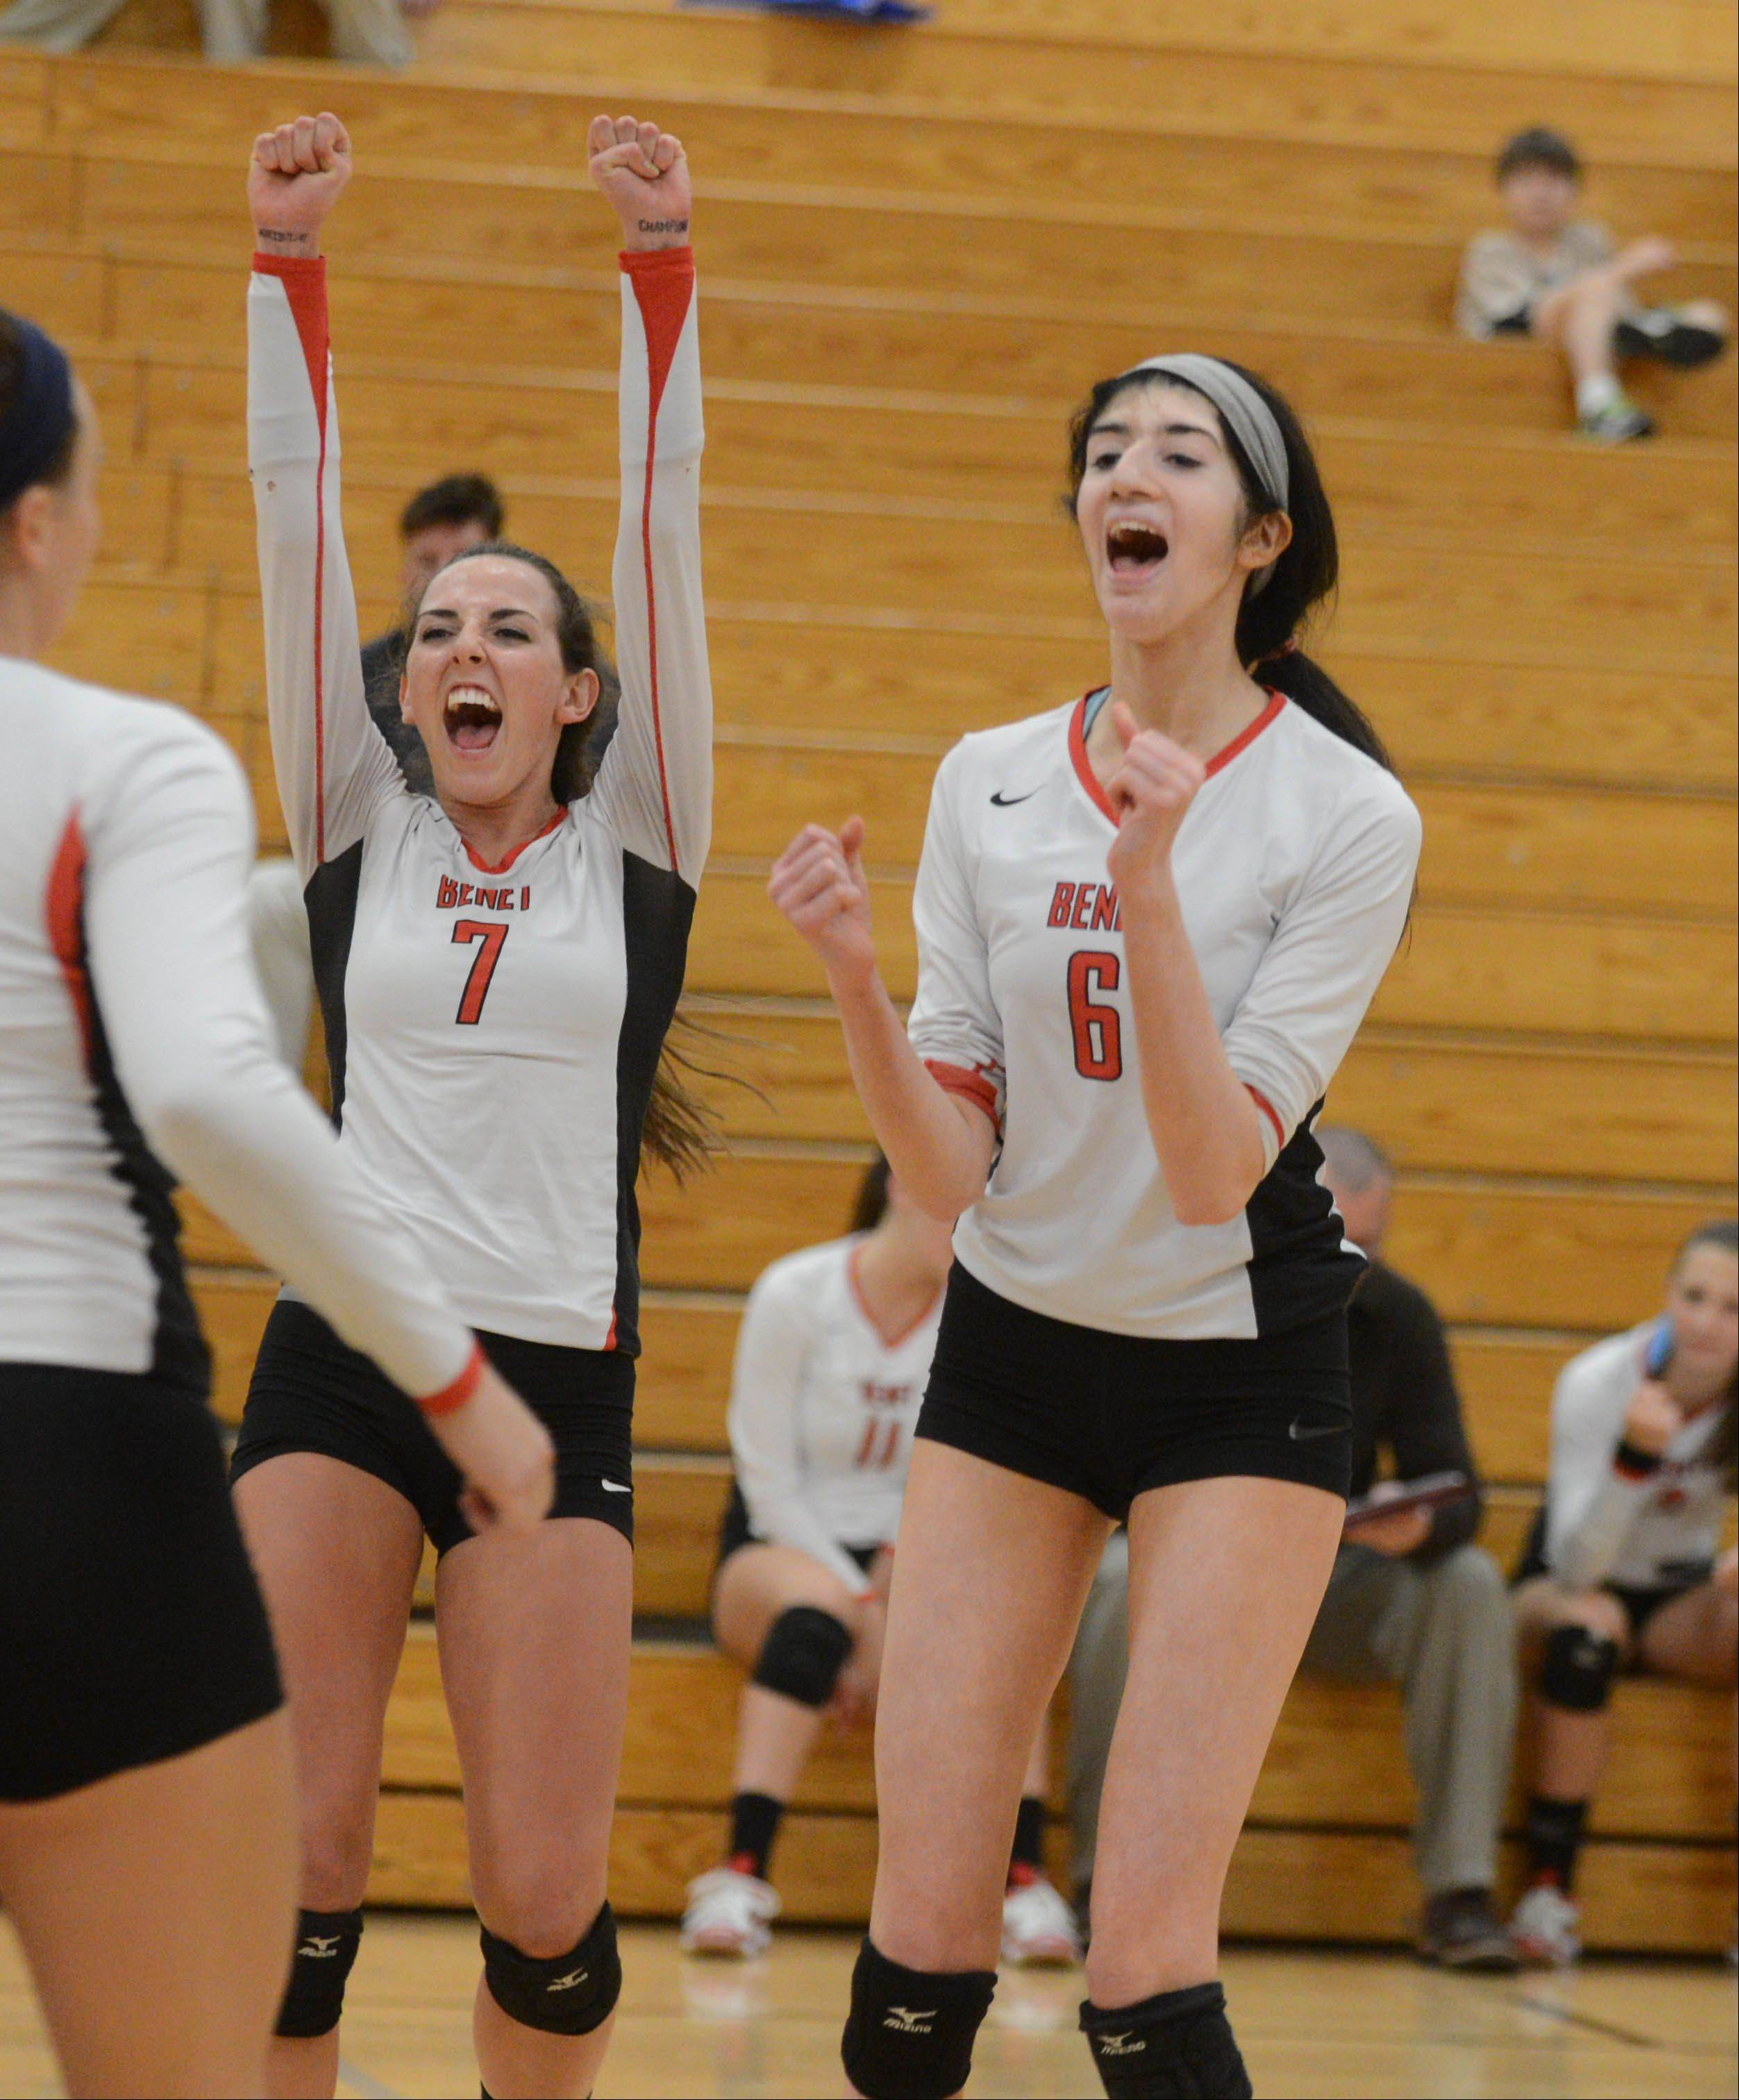 Benet's Whitney Battoe, left, and Stephanie Sinnappan celebrate a point during Thursday's volleyball match against Joliet Catholic.